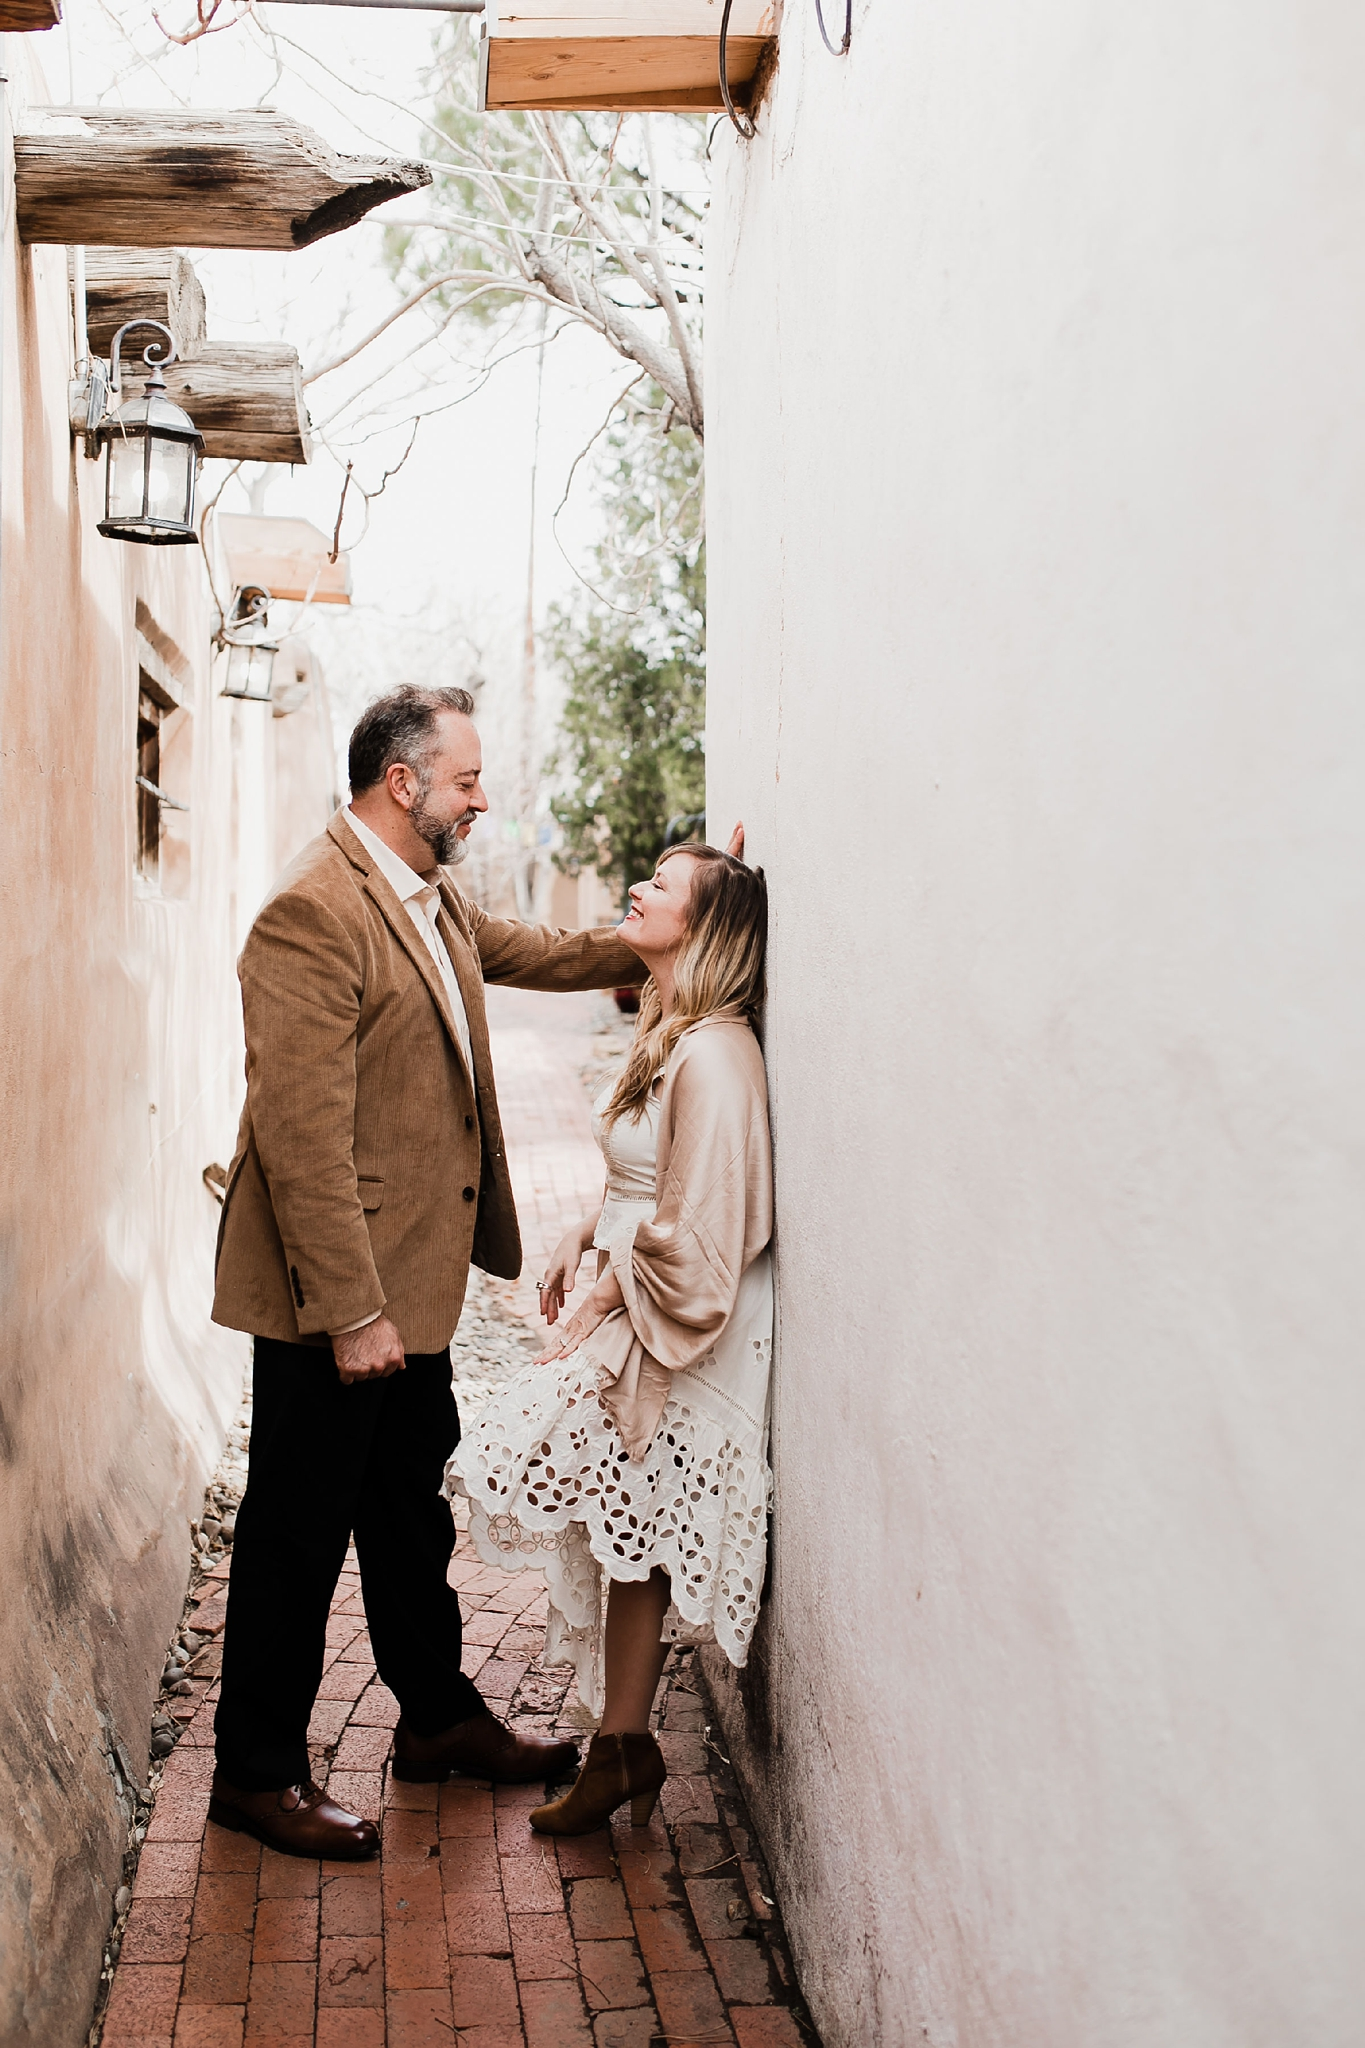 Alicia+lucia+photography+-+albuquerque+wedding+photographer+-+santa+fe+wedding+photography+-+new+mexico+wedding+photographer+-+new+mexico+engagement+-+albuquerque+engagement+-+old+town+engagement_0014.jpg